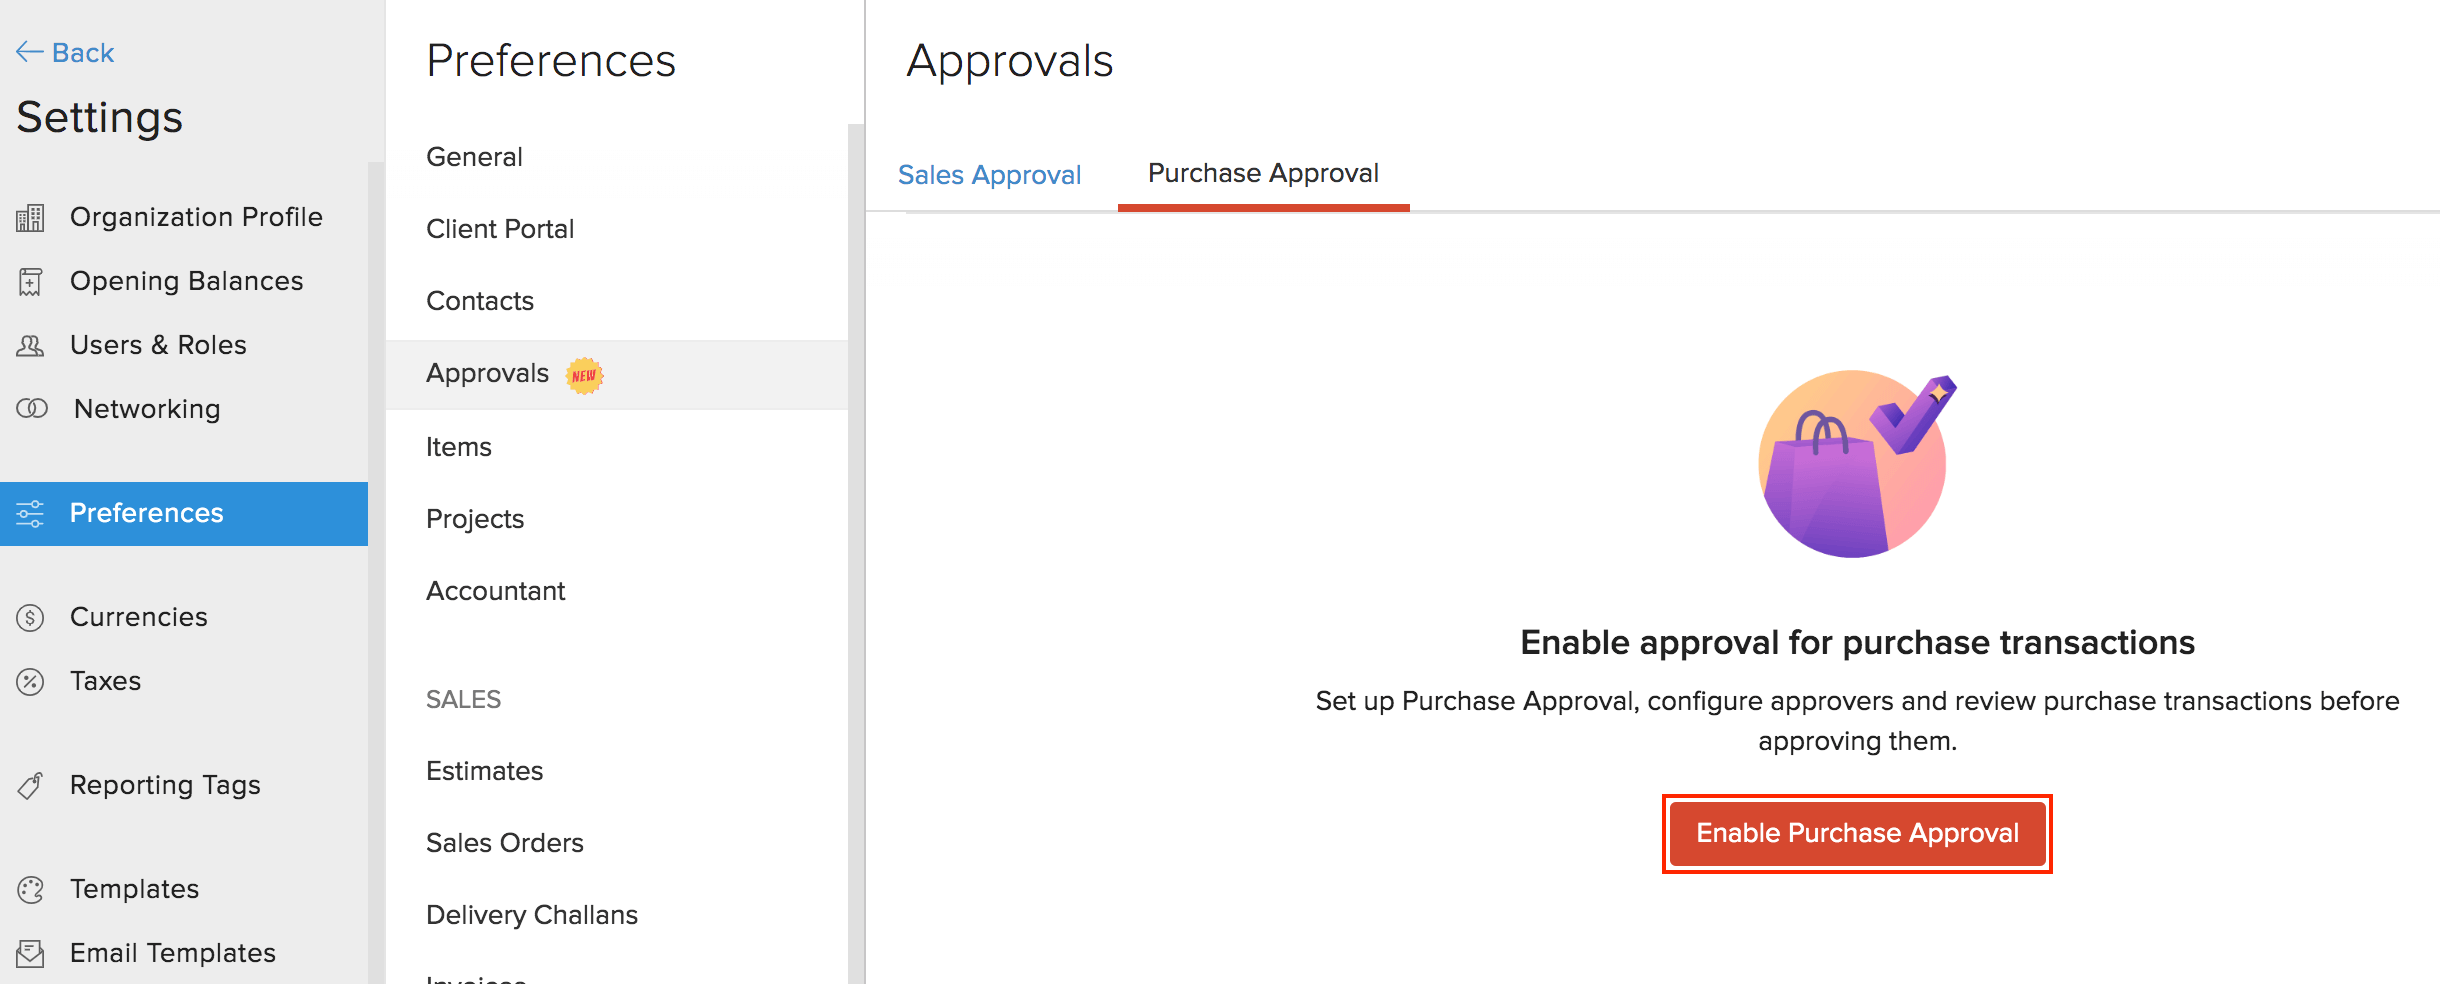 Transaction Approval